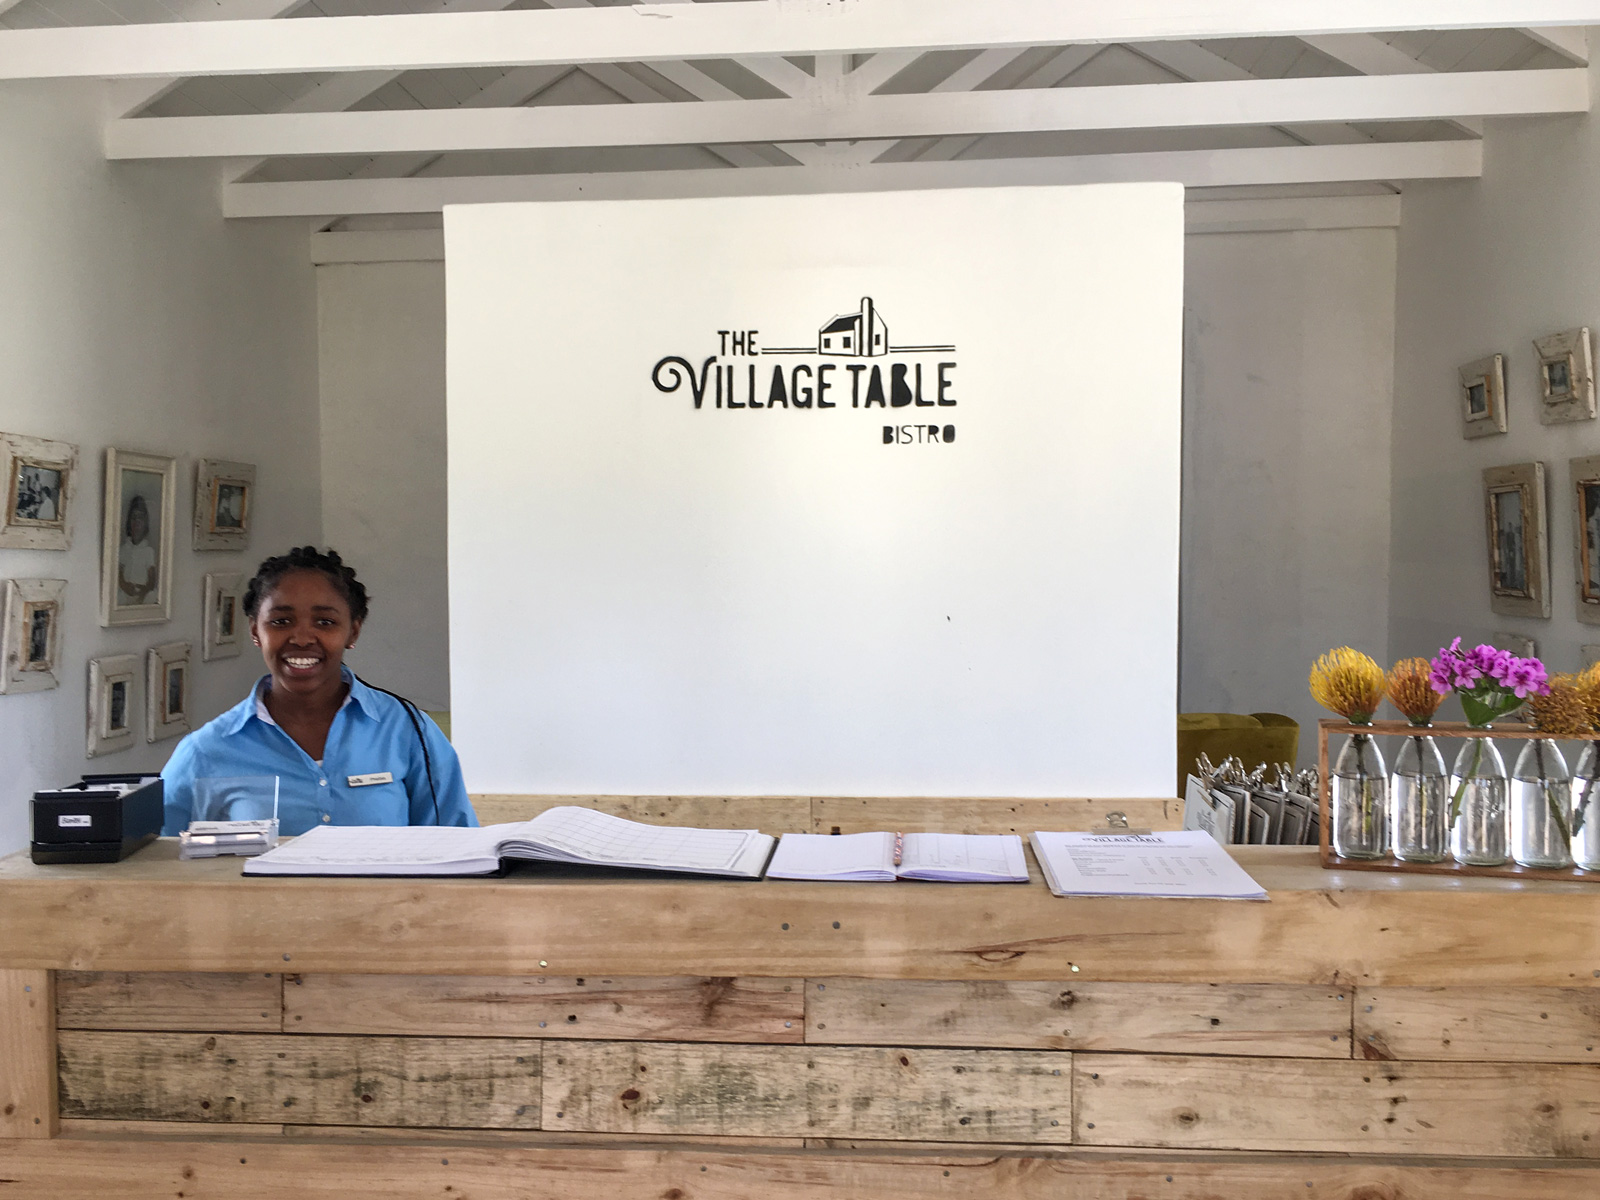 The Village Table Bistro